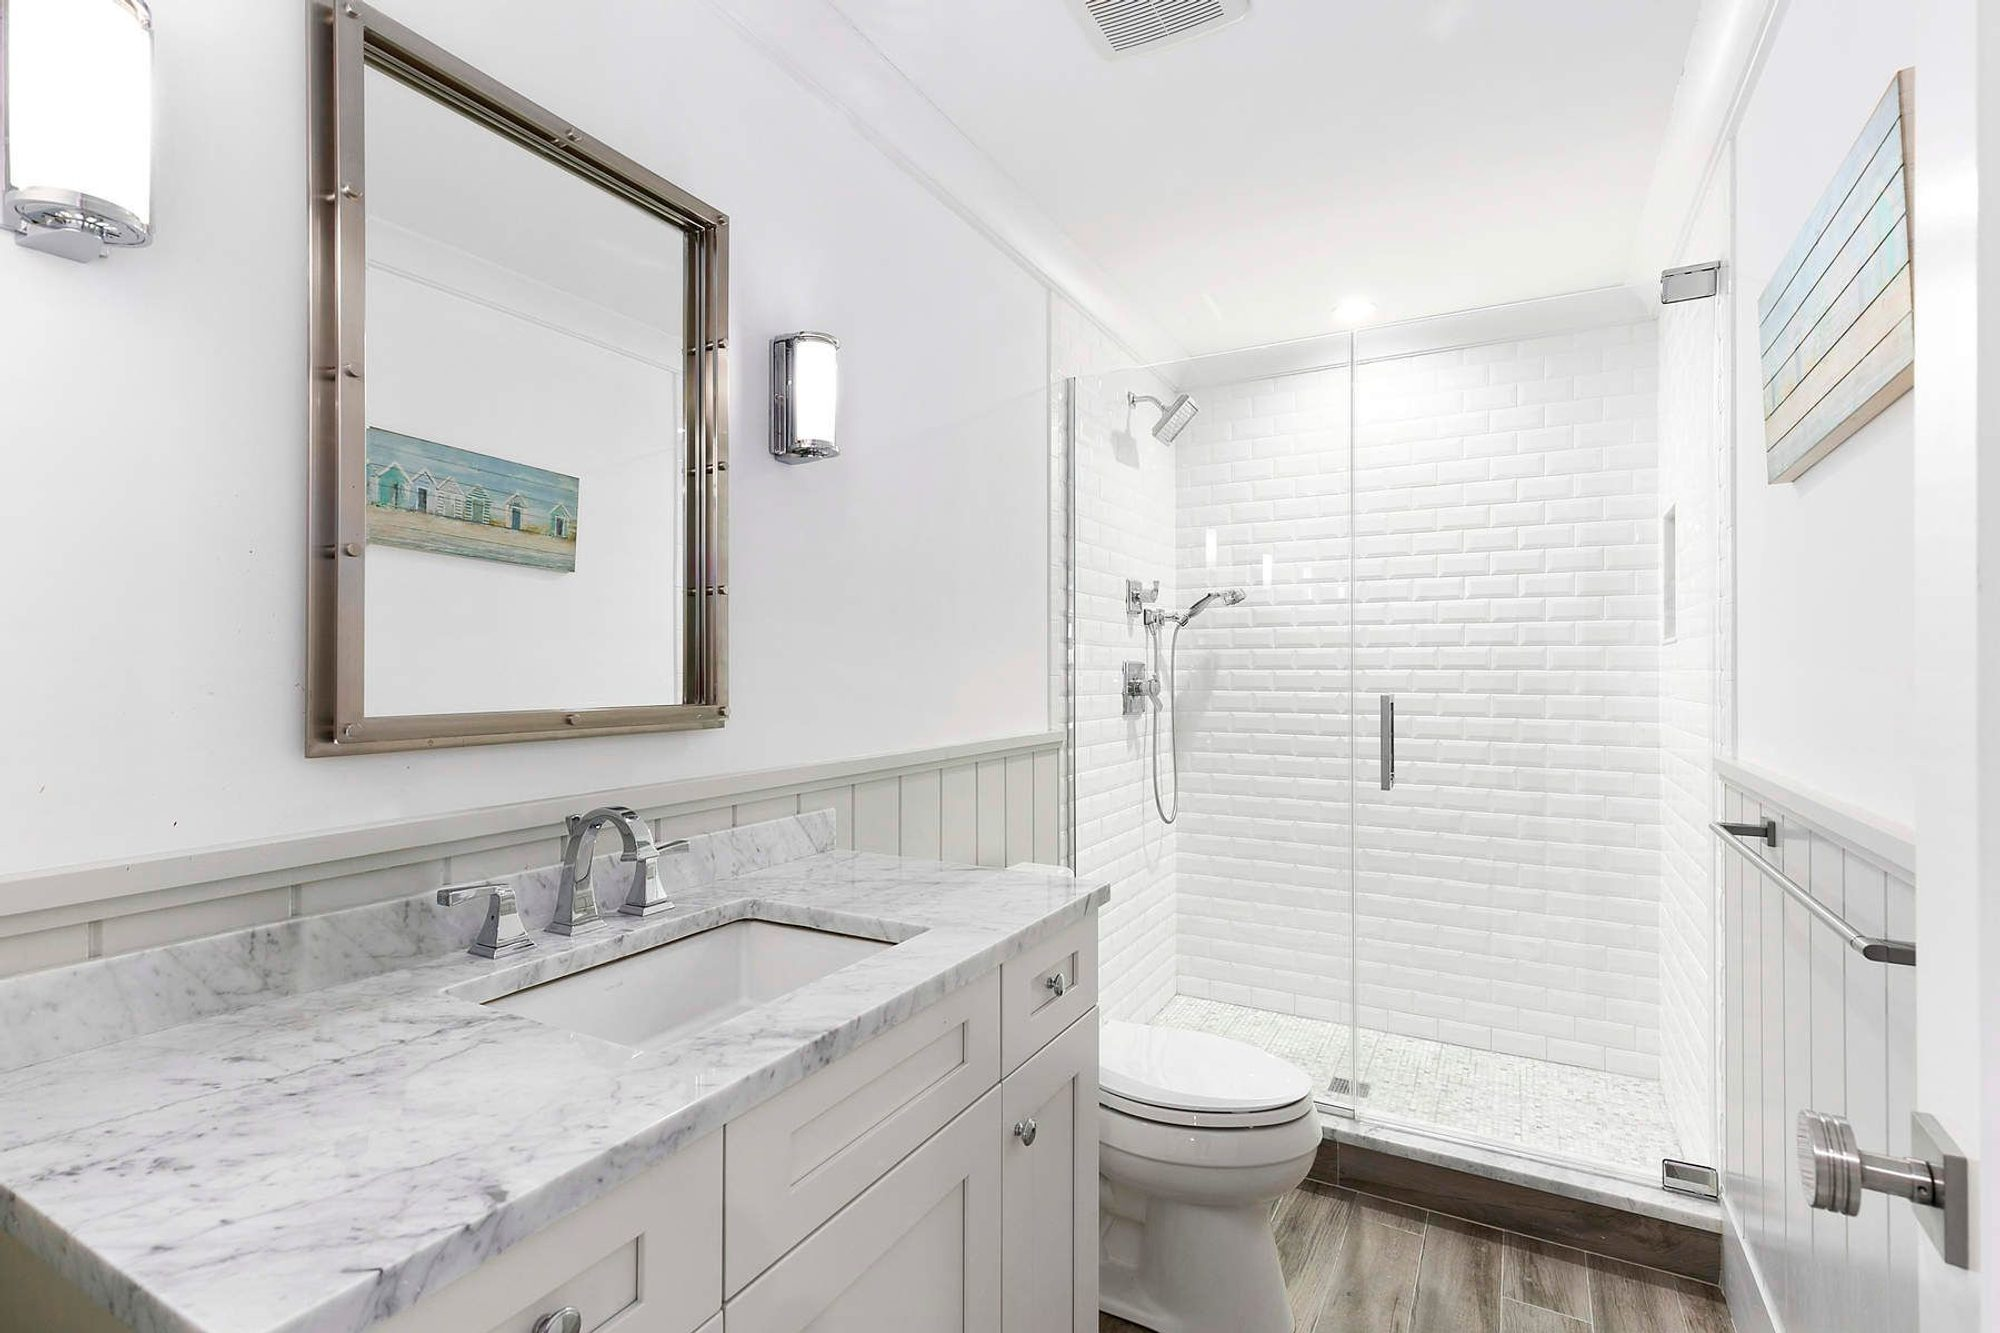 Here we see vertical shiplap wall paneling used as wainscoting. With a small bathroom vertical paneling works better. it makes a small space feel larger.